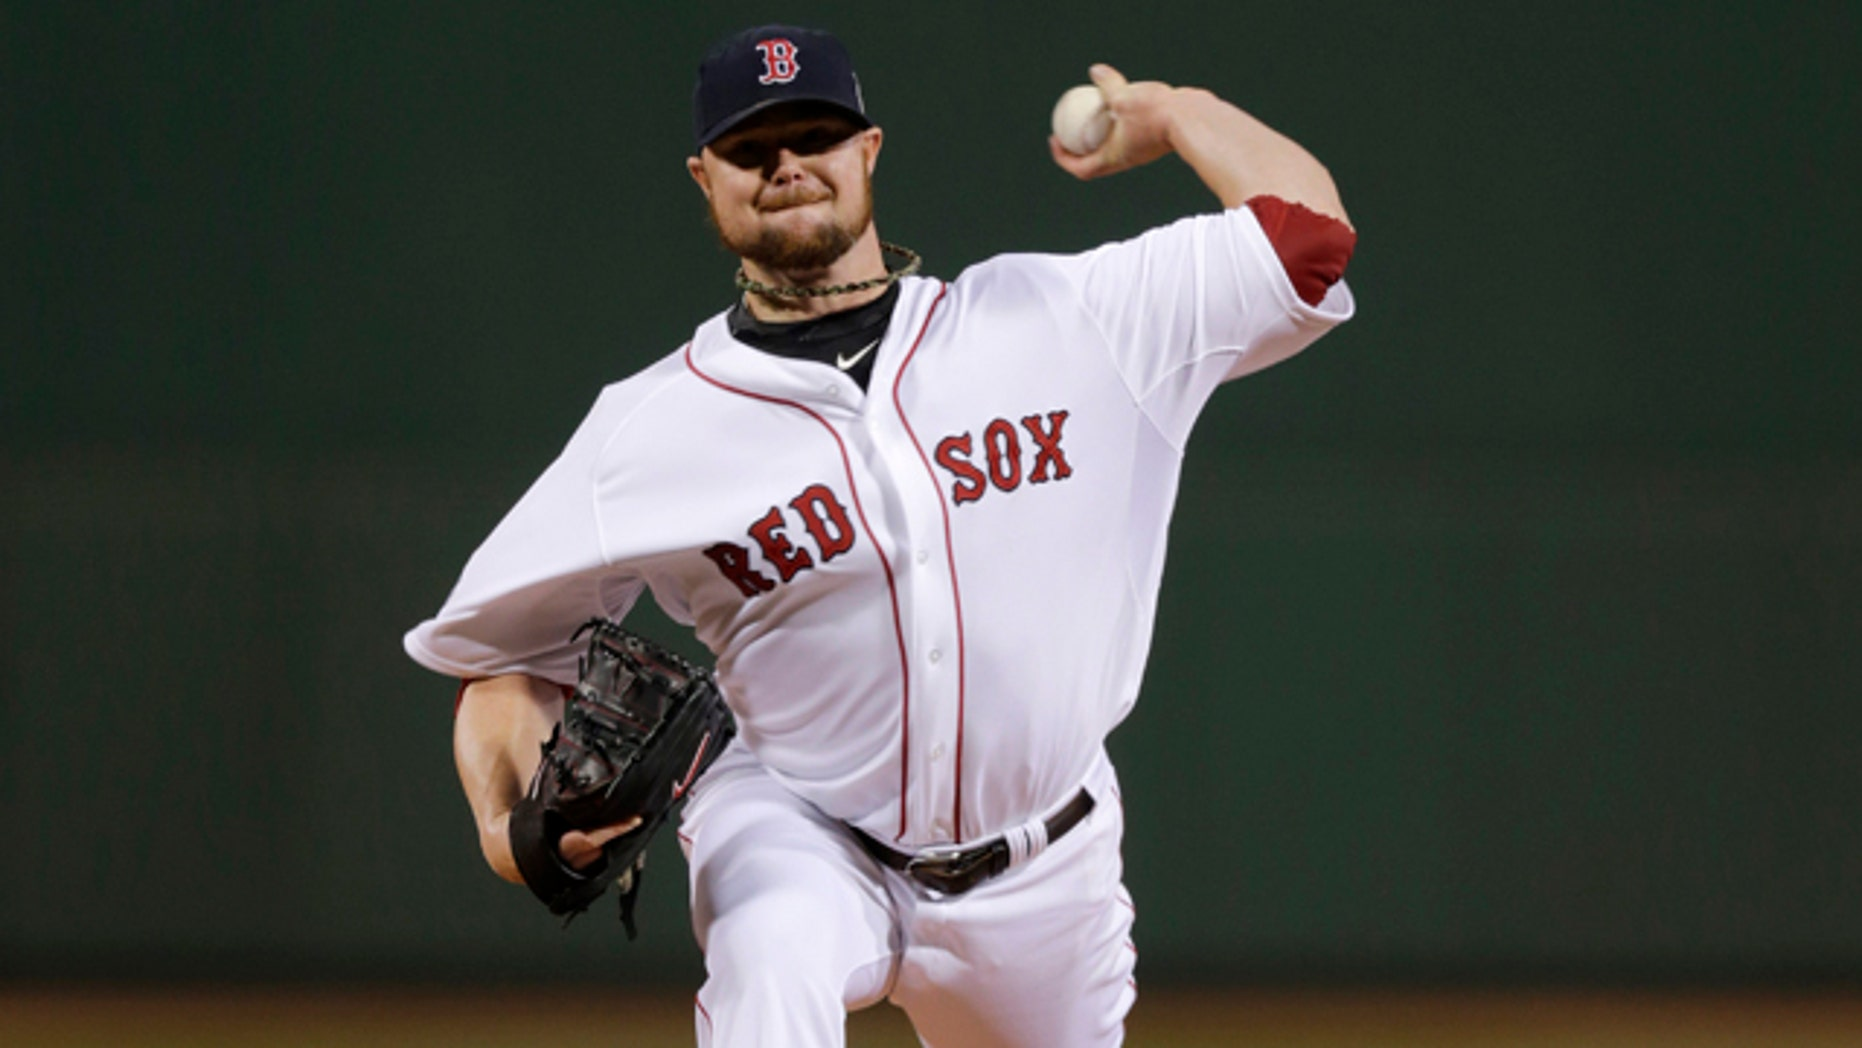 Oct. 23, 2013: Boston Red Sox starting pitcher Jon Lester throws during the first inning of Game 1 of baseball's World Series against the St. Louis Cardinals.